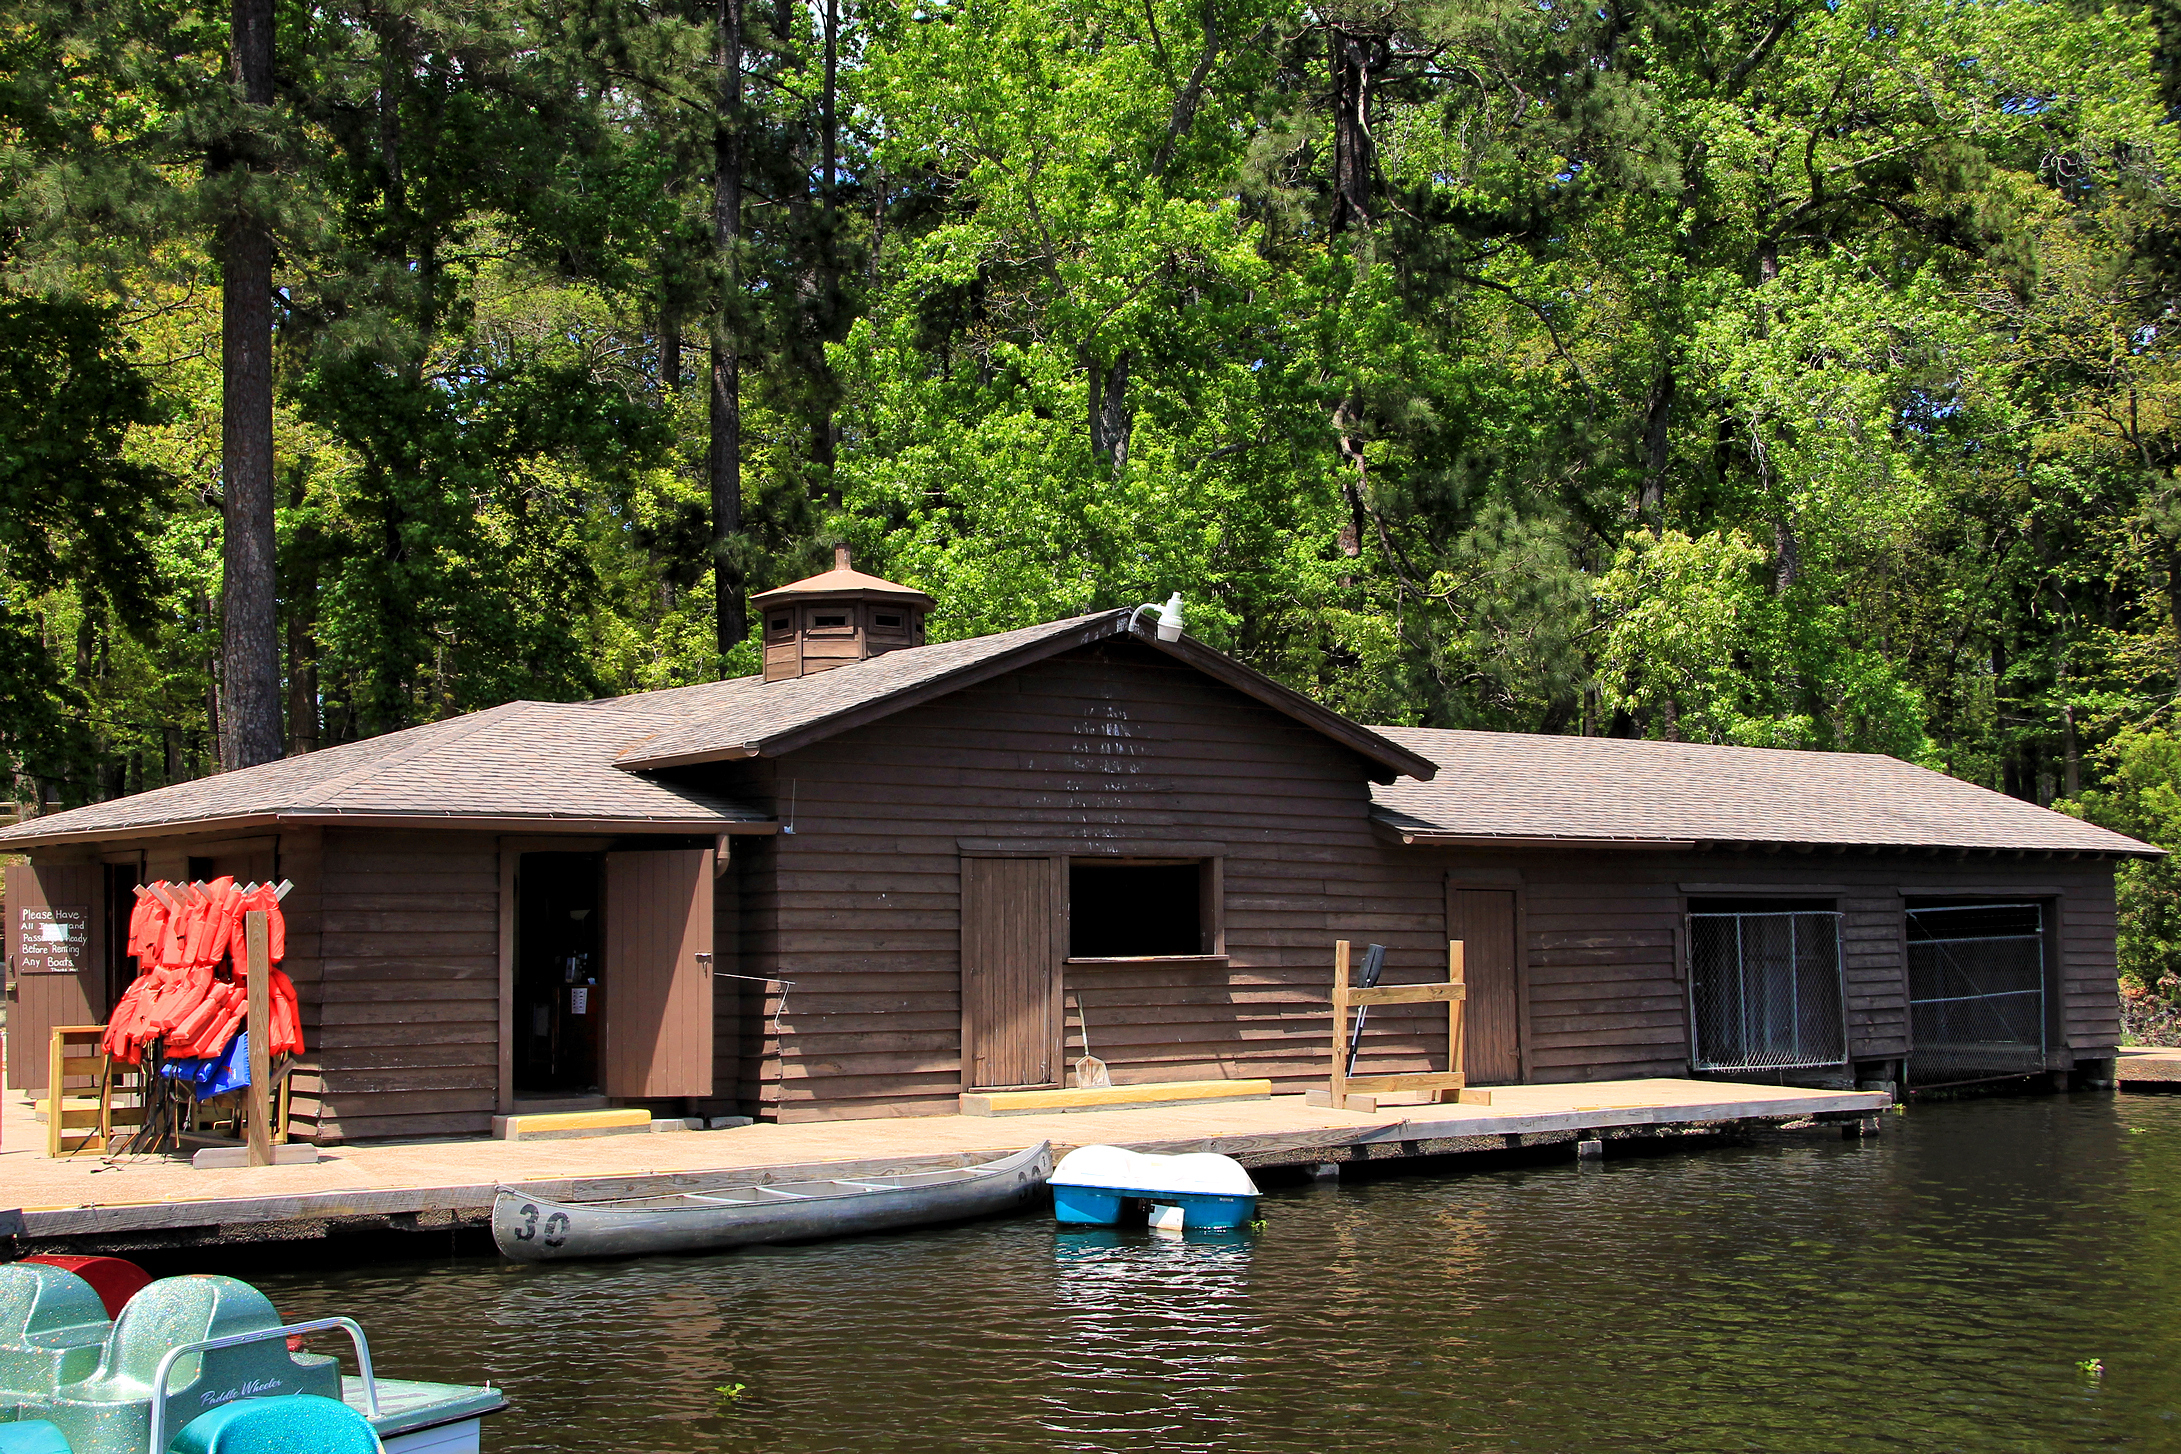 Attrayant File:Lake Ravern Boat House Huntsville Tx 2014